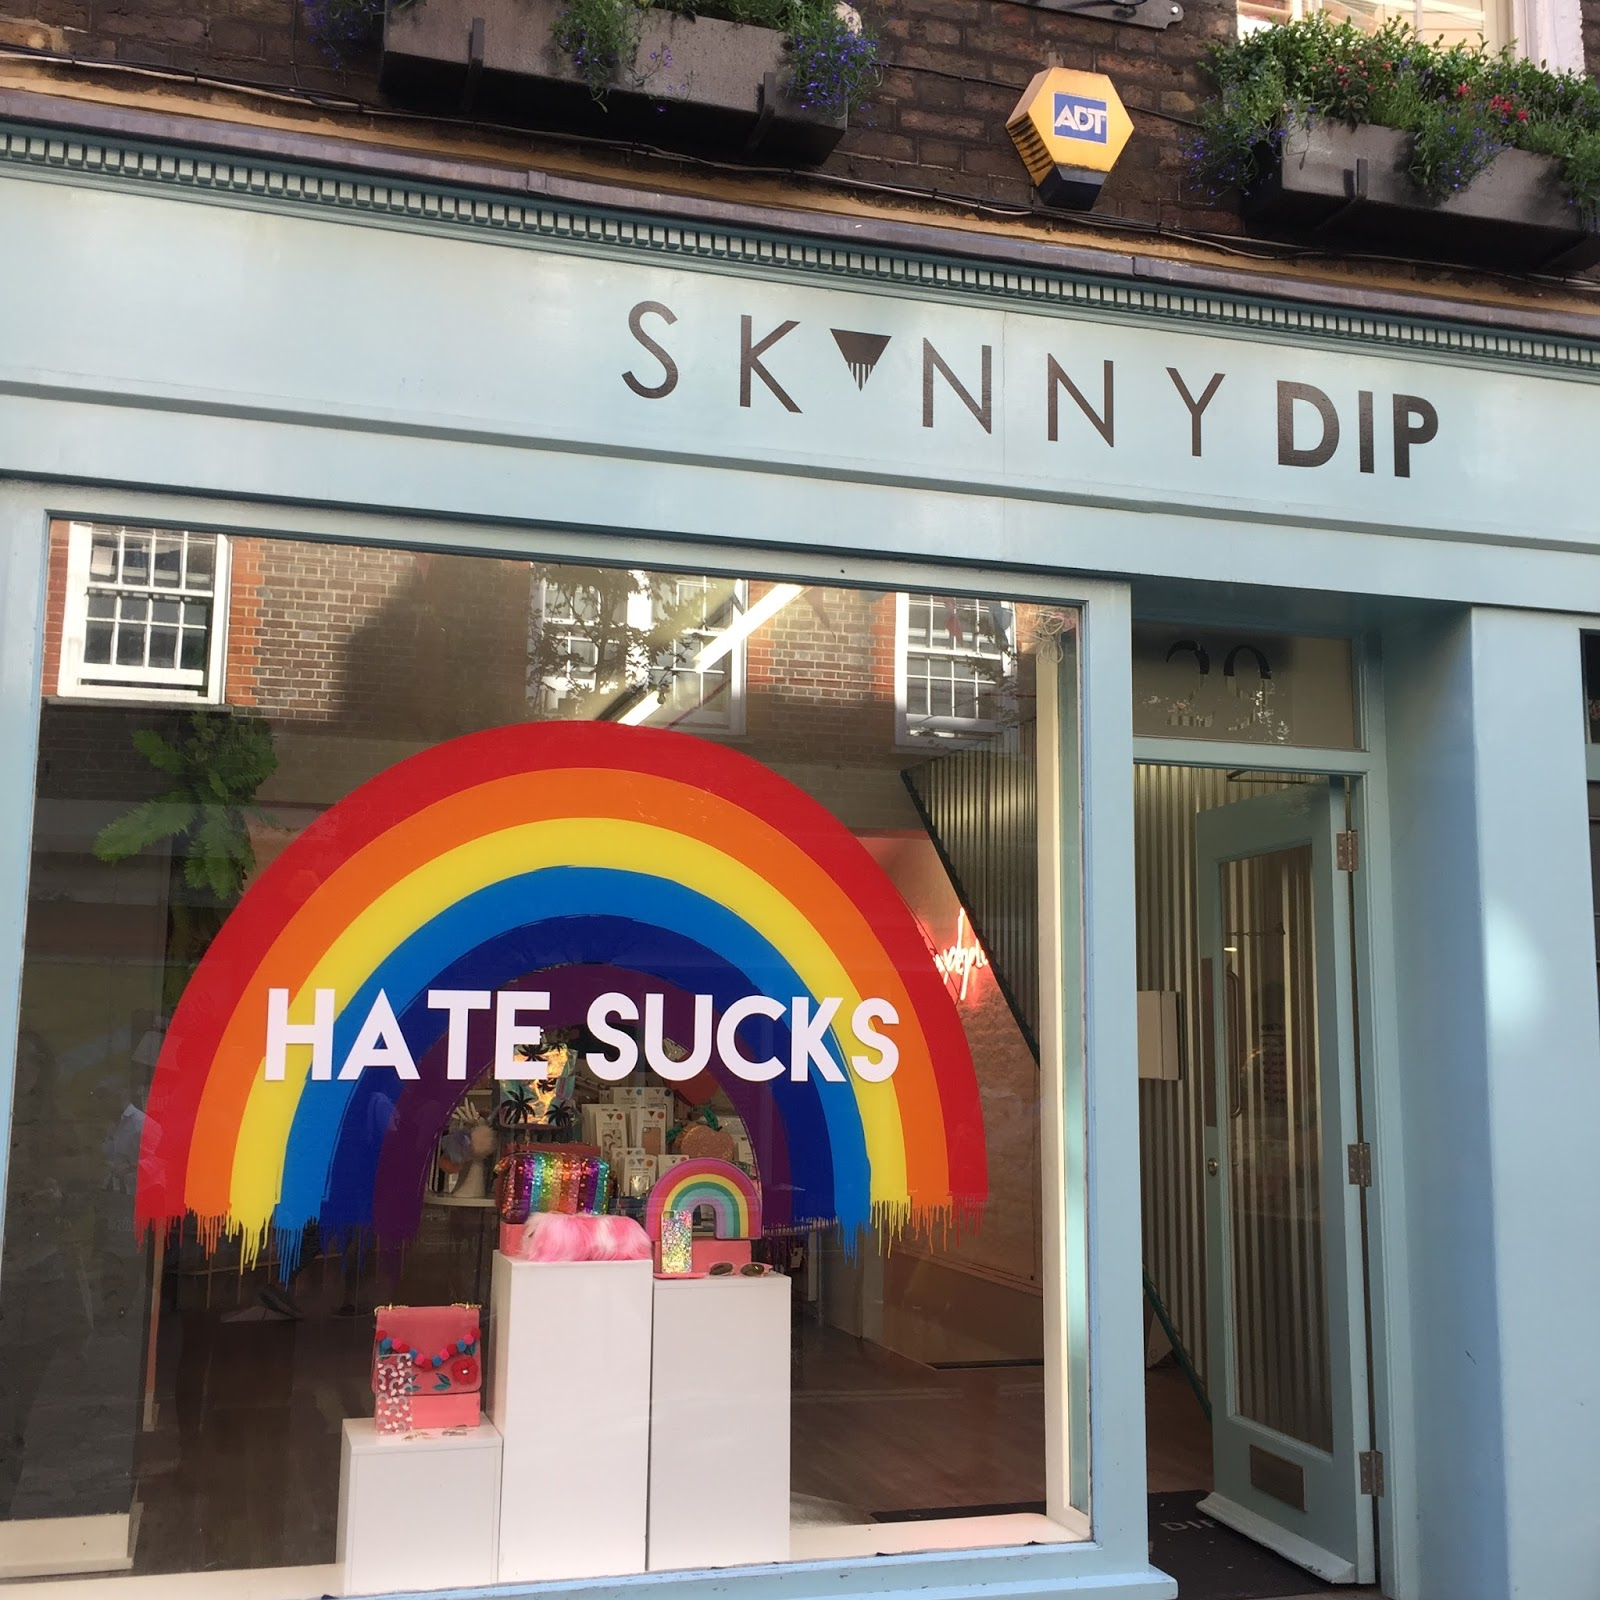 Covent Garden Skinnydip store